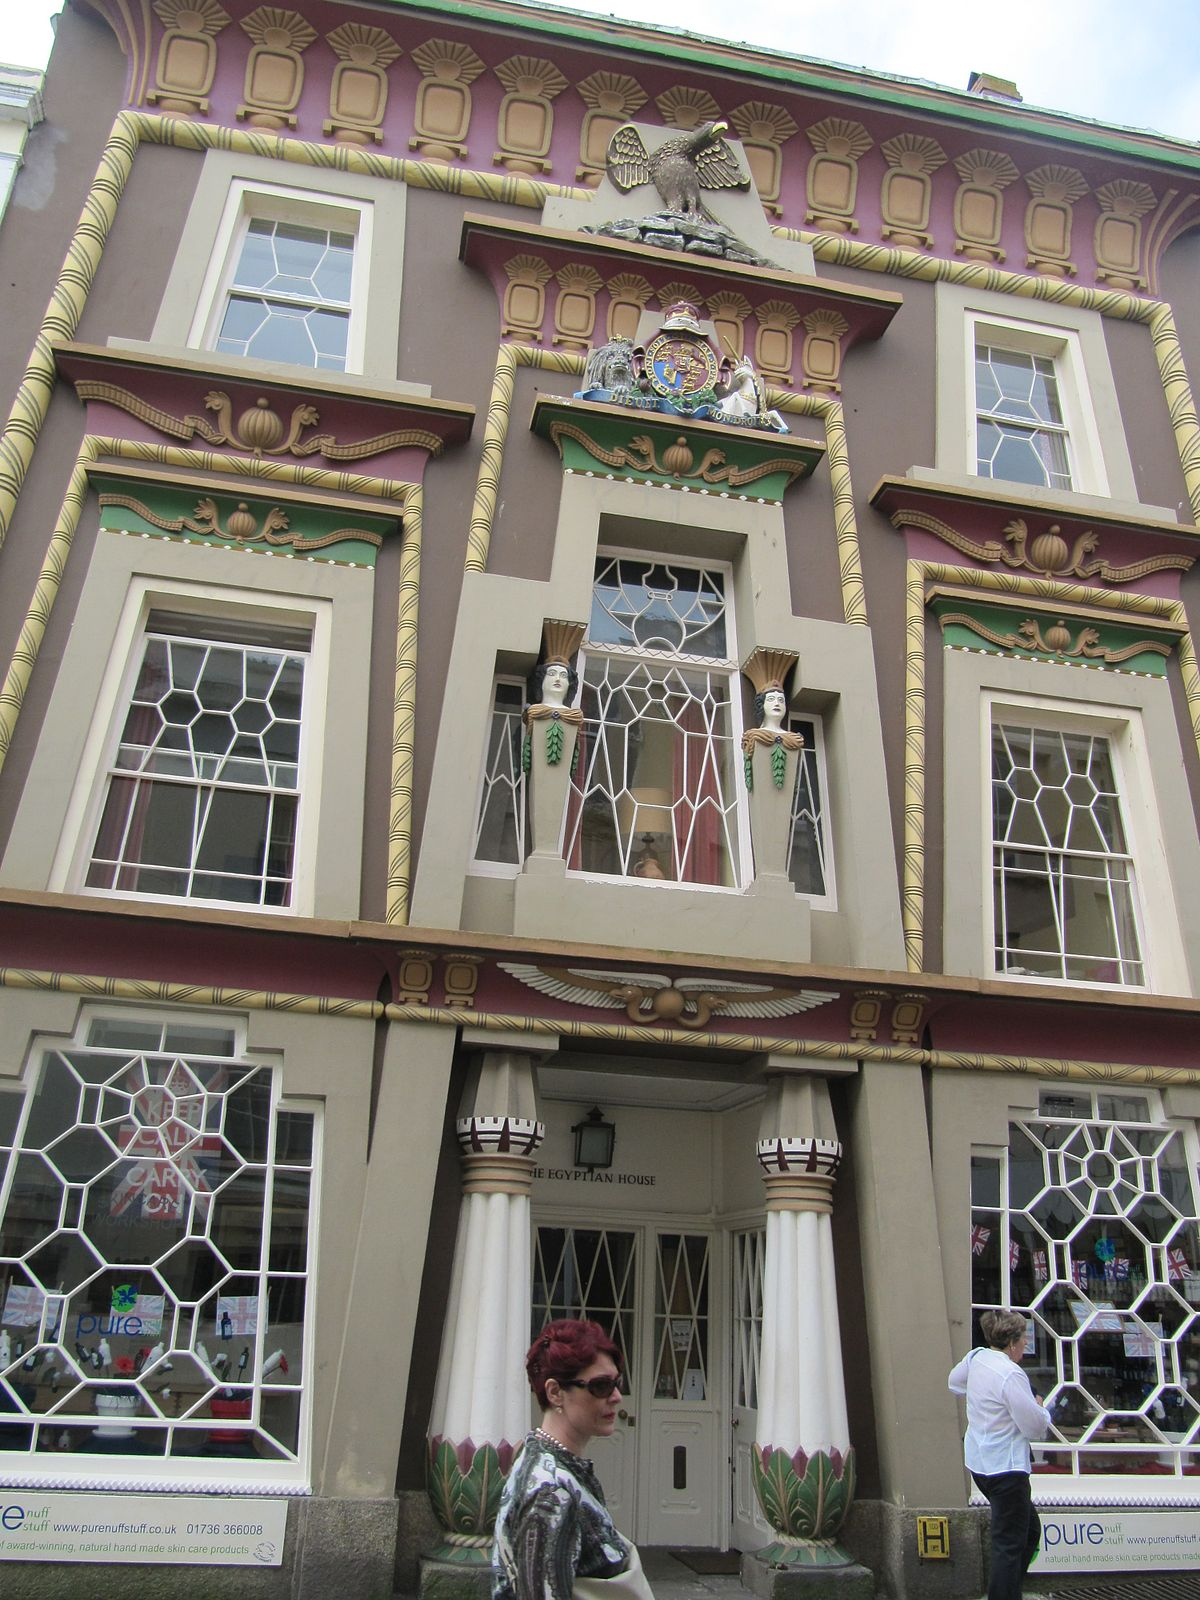 Egyptian Revival Architecture In The British Isles Wikipedia